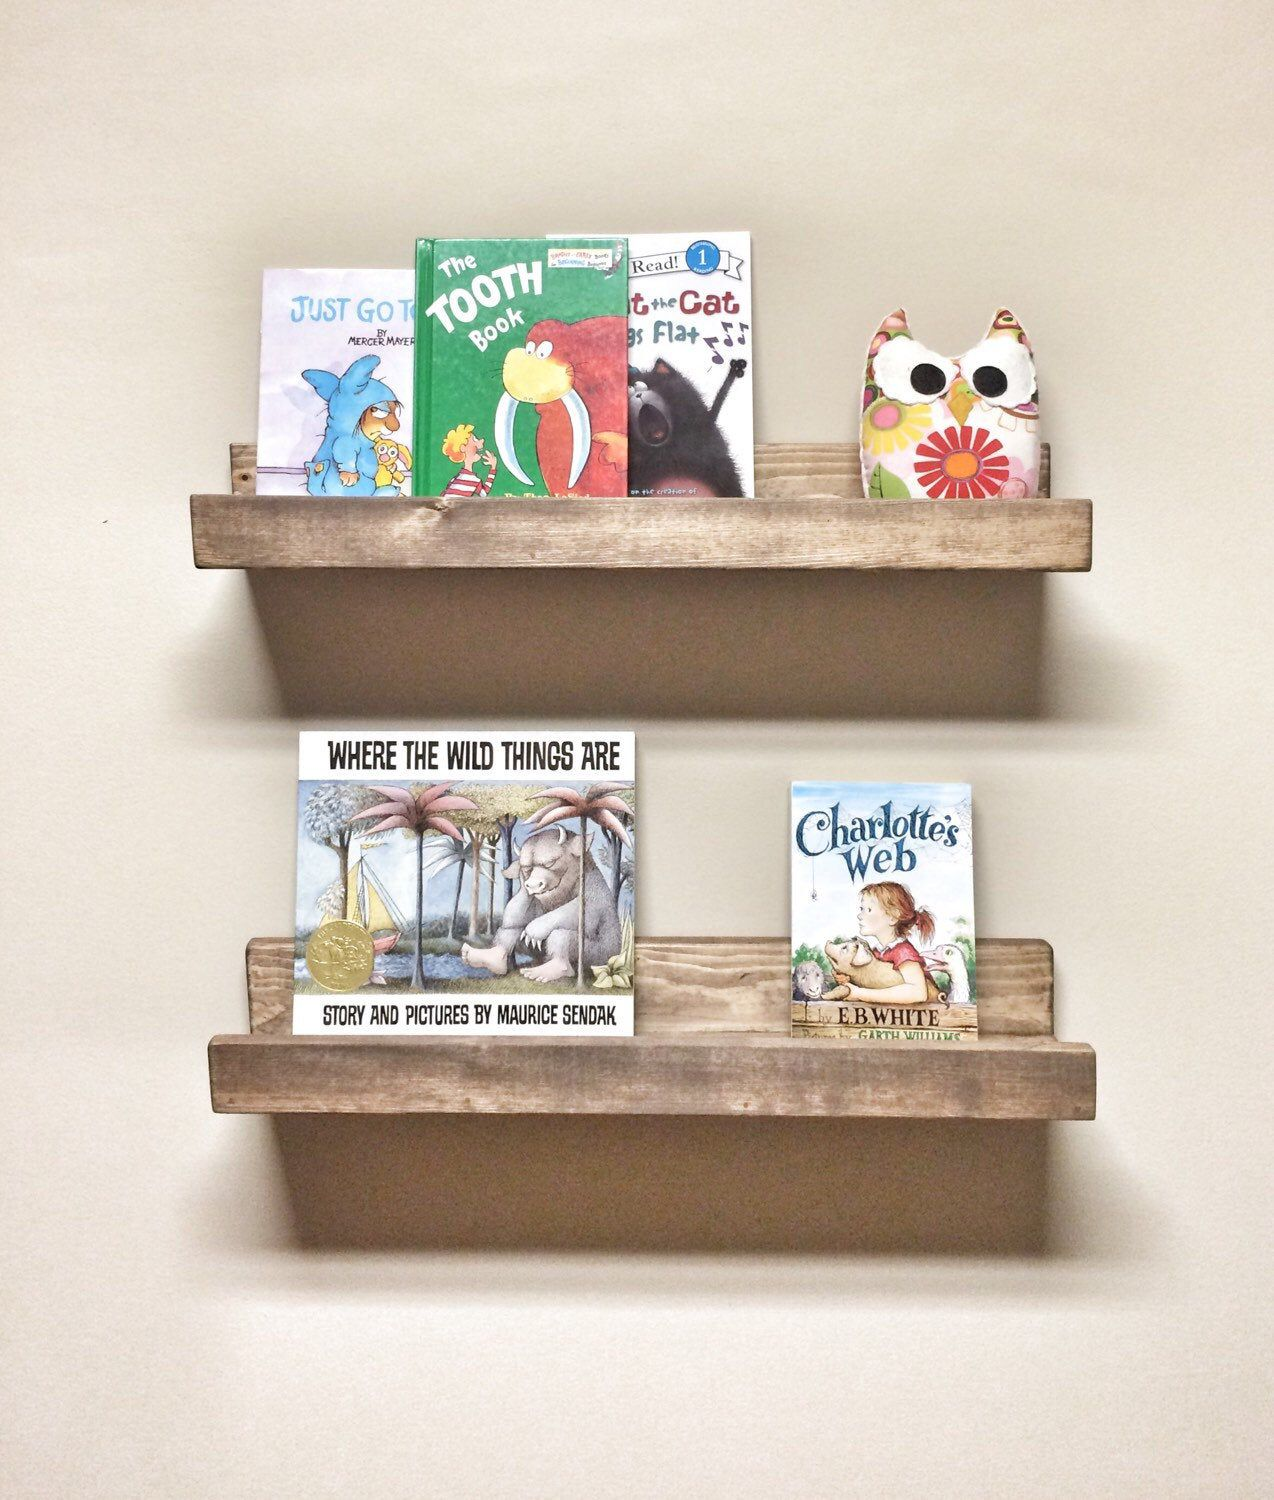 Set Of 2 Picture Ledge Shelves 24 Inch Floating Shelves Nursery Kids Room Shelf Toy Book Shelf Rustic Wood Shelves Gallery Wall Shelf Picture Ledge Shelf Gallery Wall Shelves Ledge Shelf